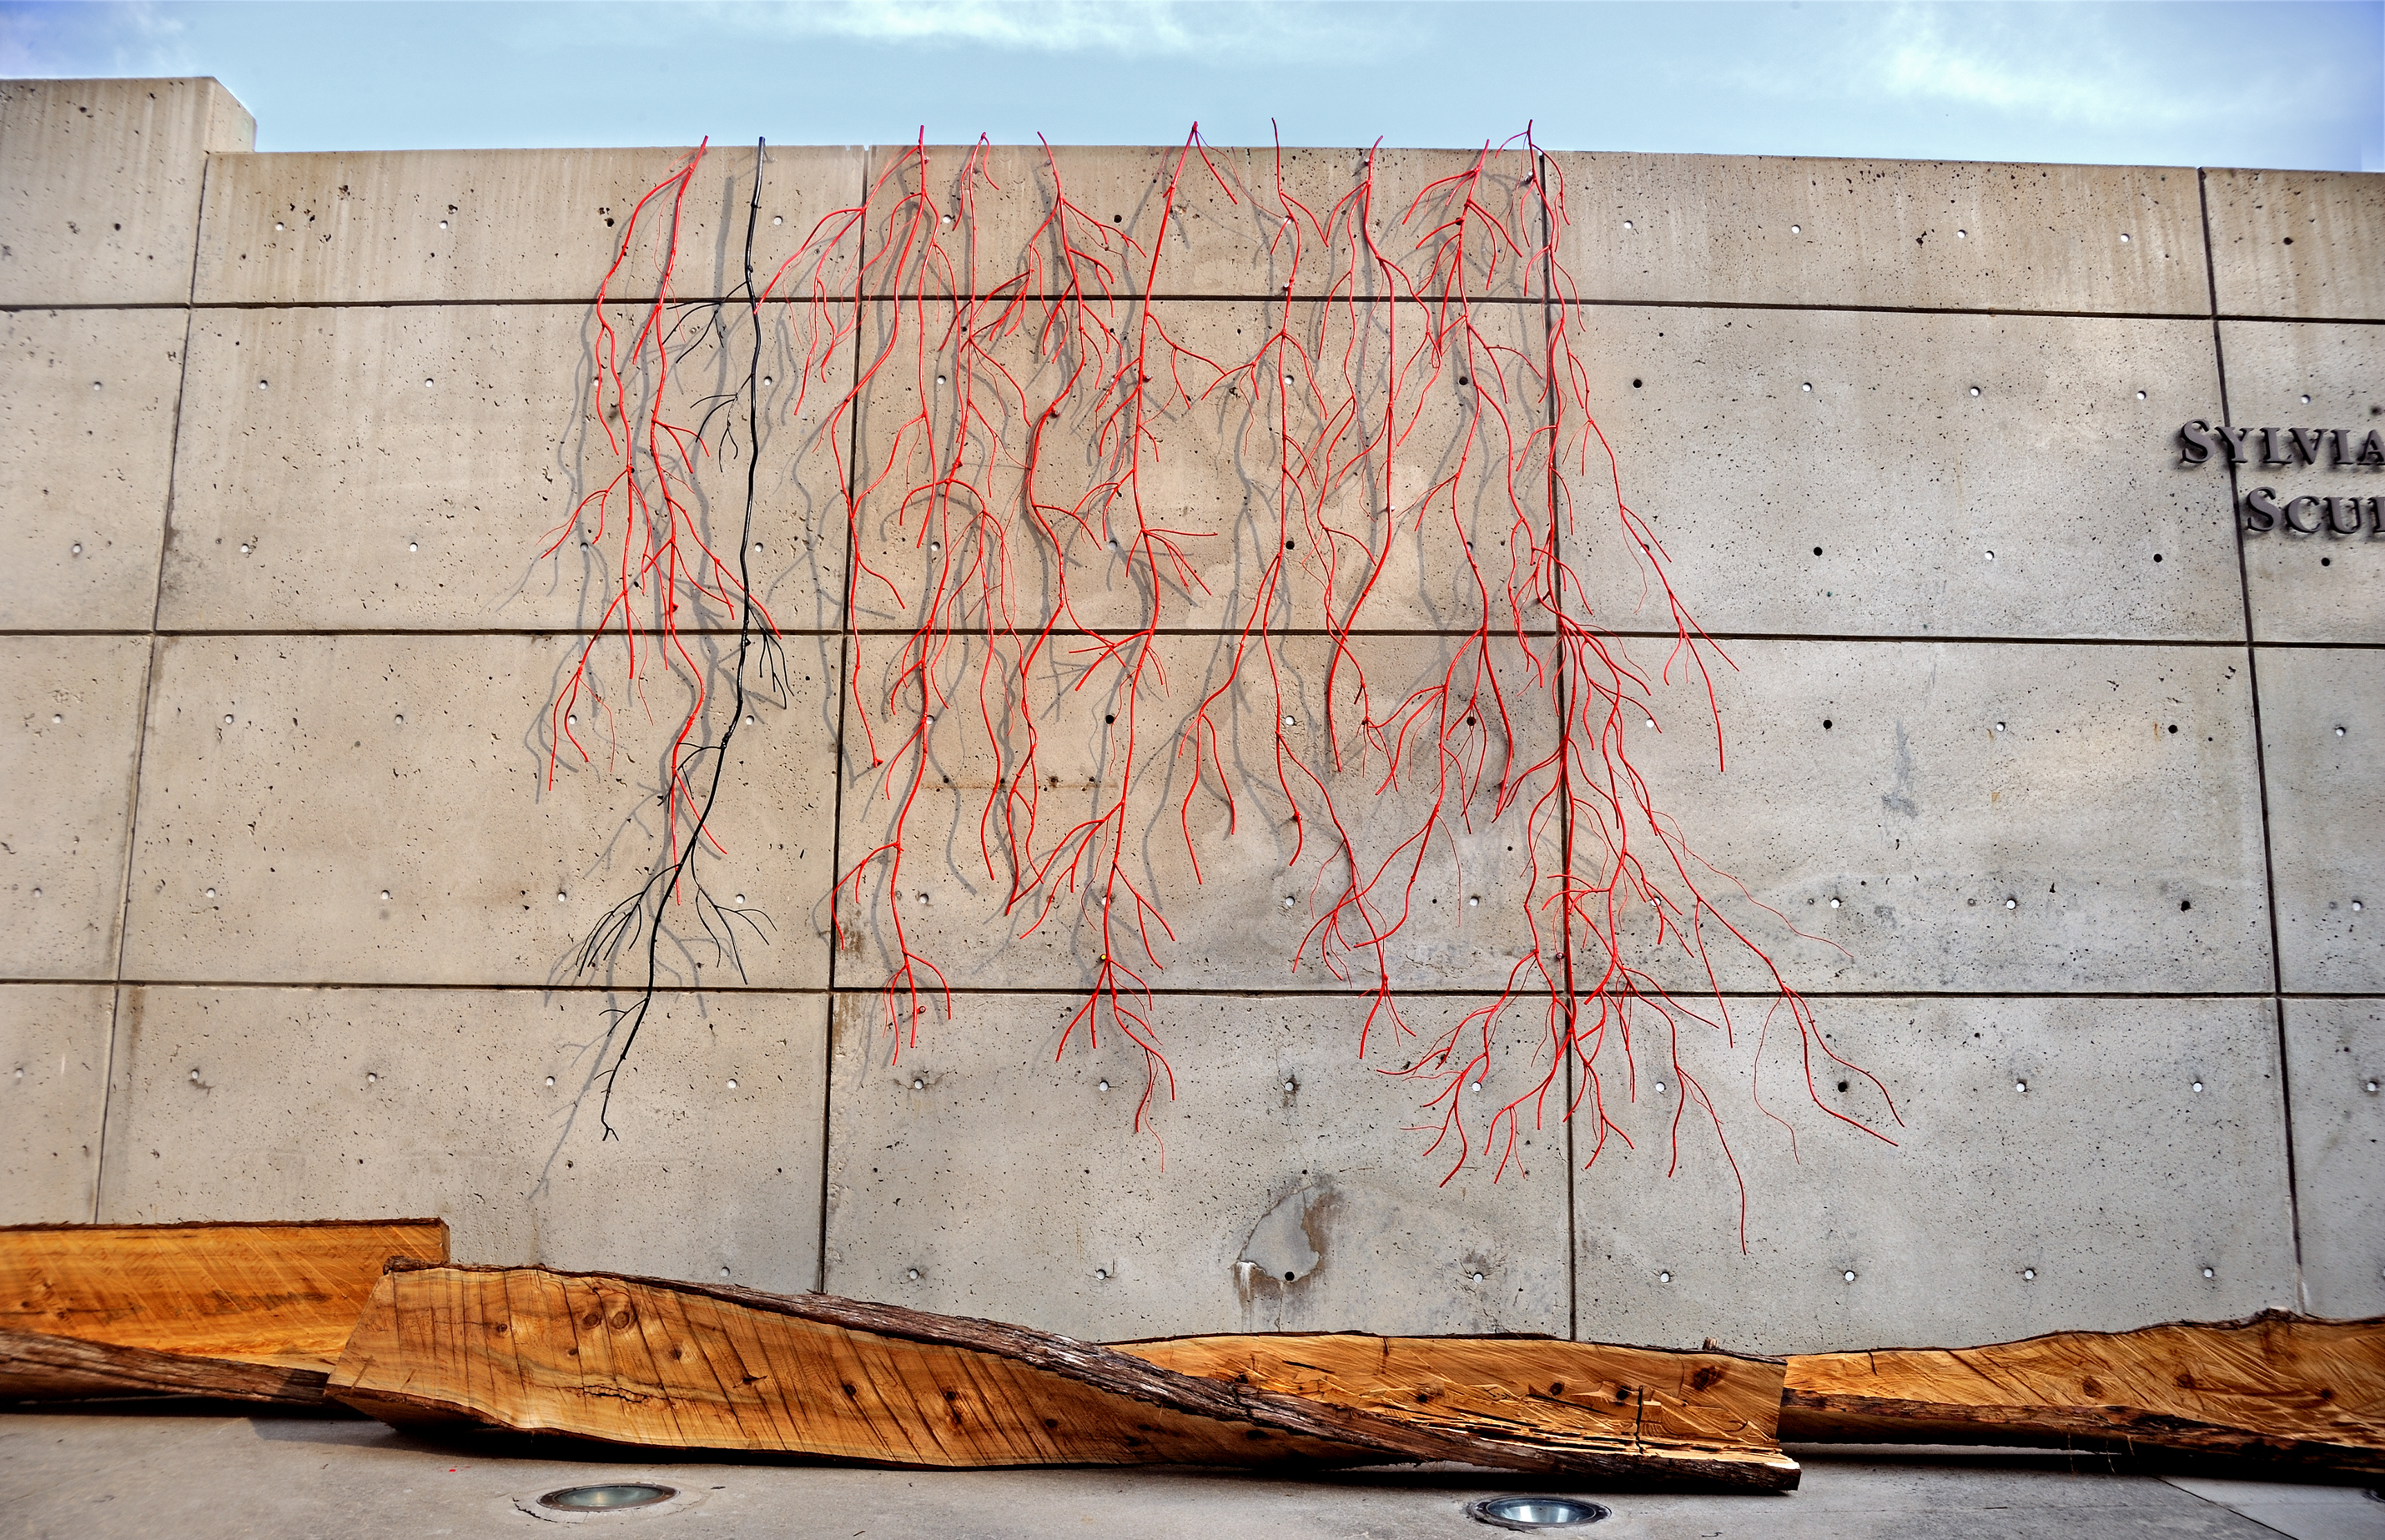 Contemporary sculptural installation with vertical cedar trees and red vine-like metal sculptures hanging from the walls